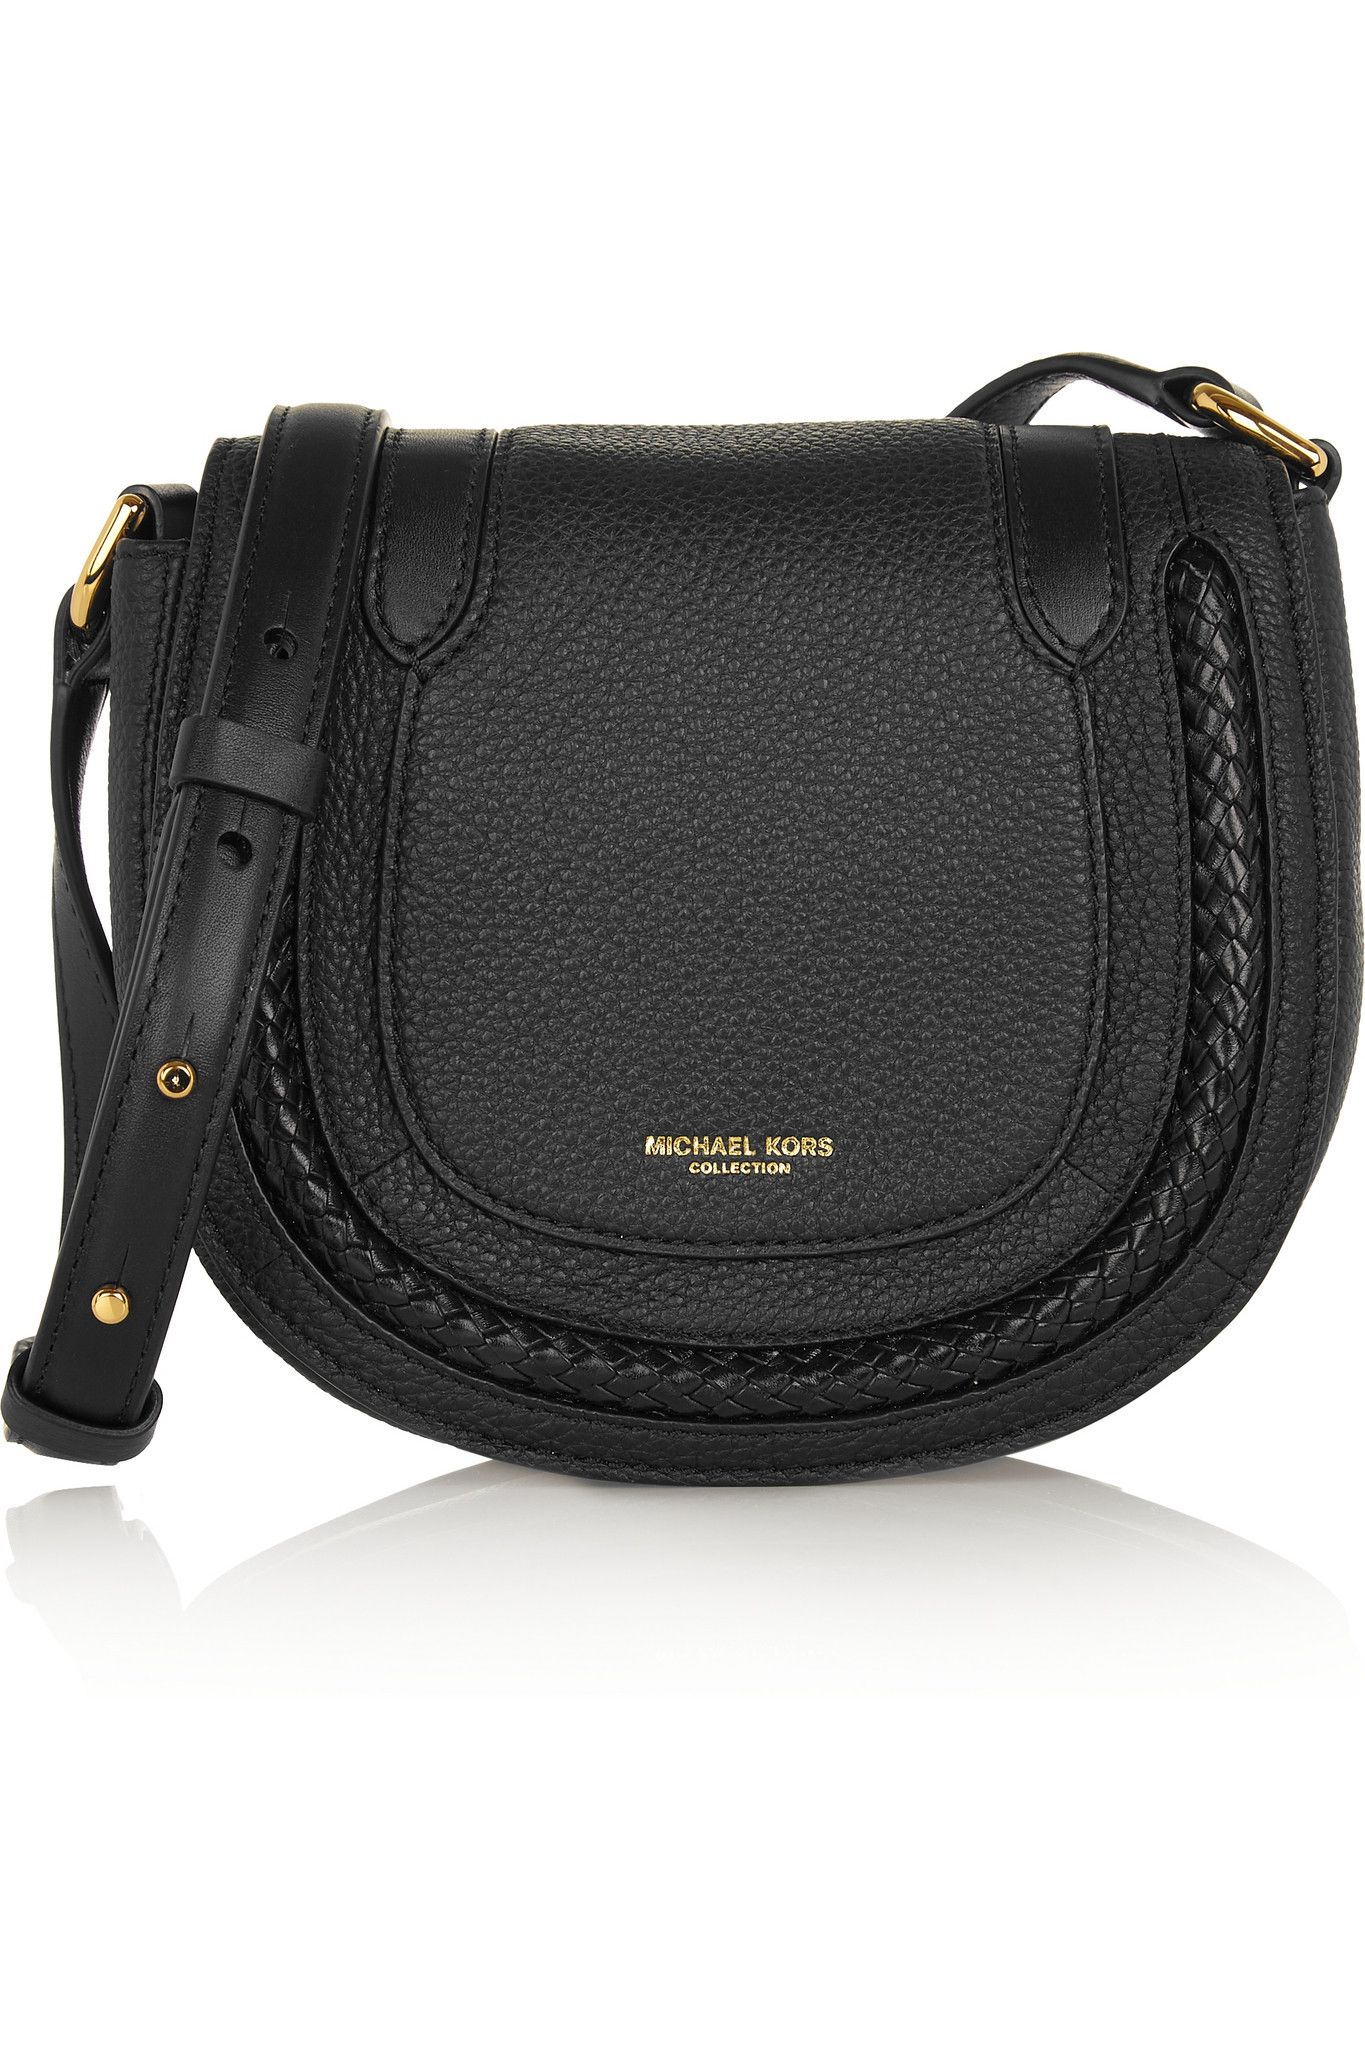 MICHAEL KORS COLLECTION Skorpios small textured-leather shoulder bag  $650.00 https://www.net-a-porter.com/products/639938